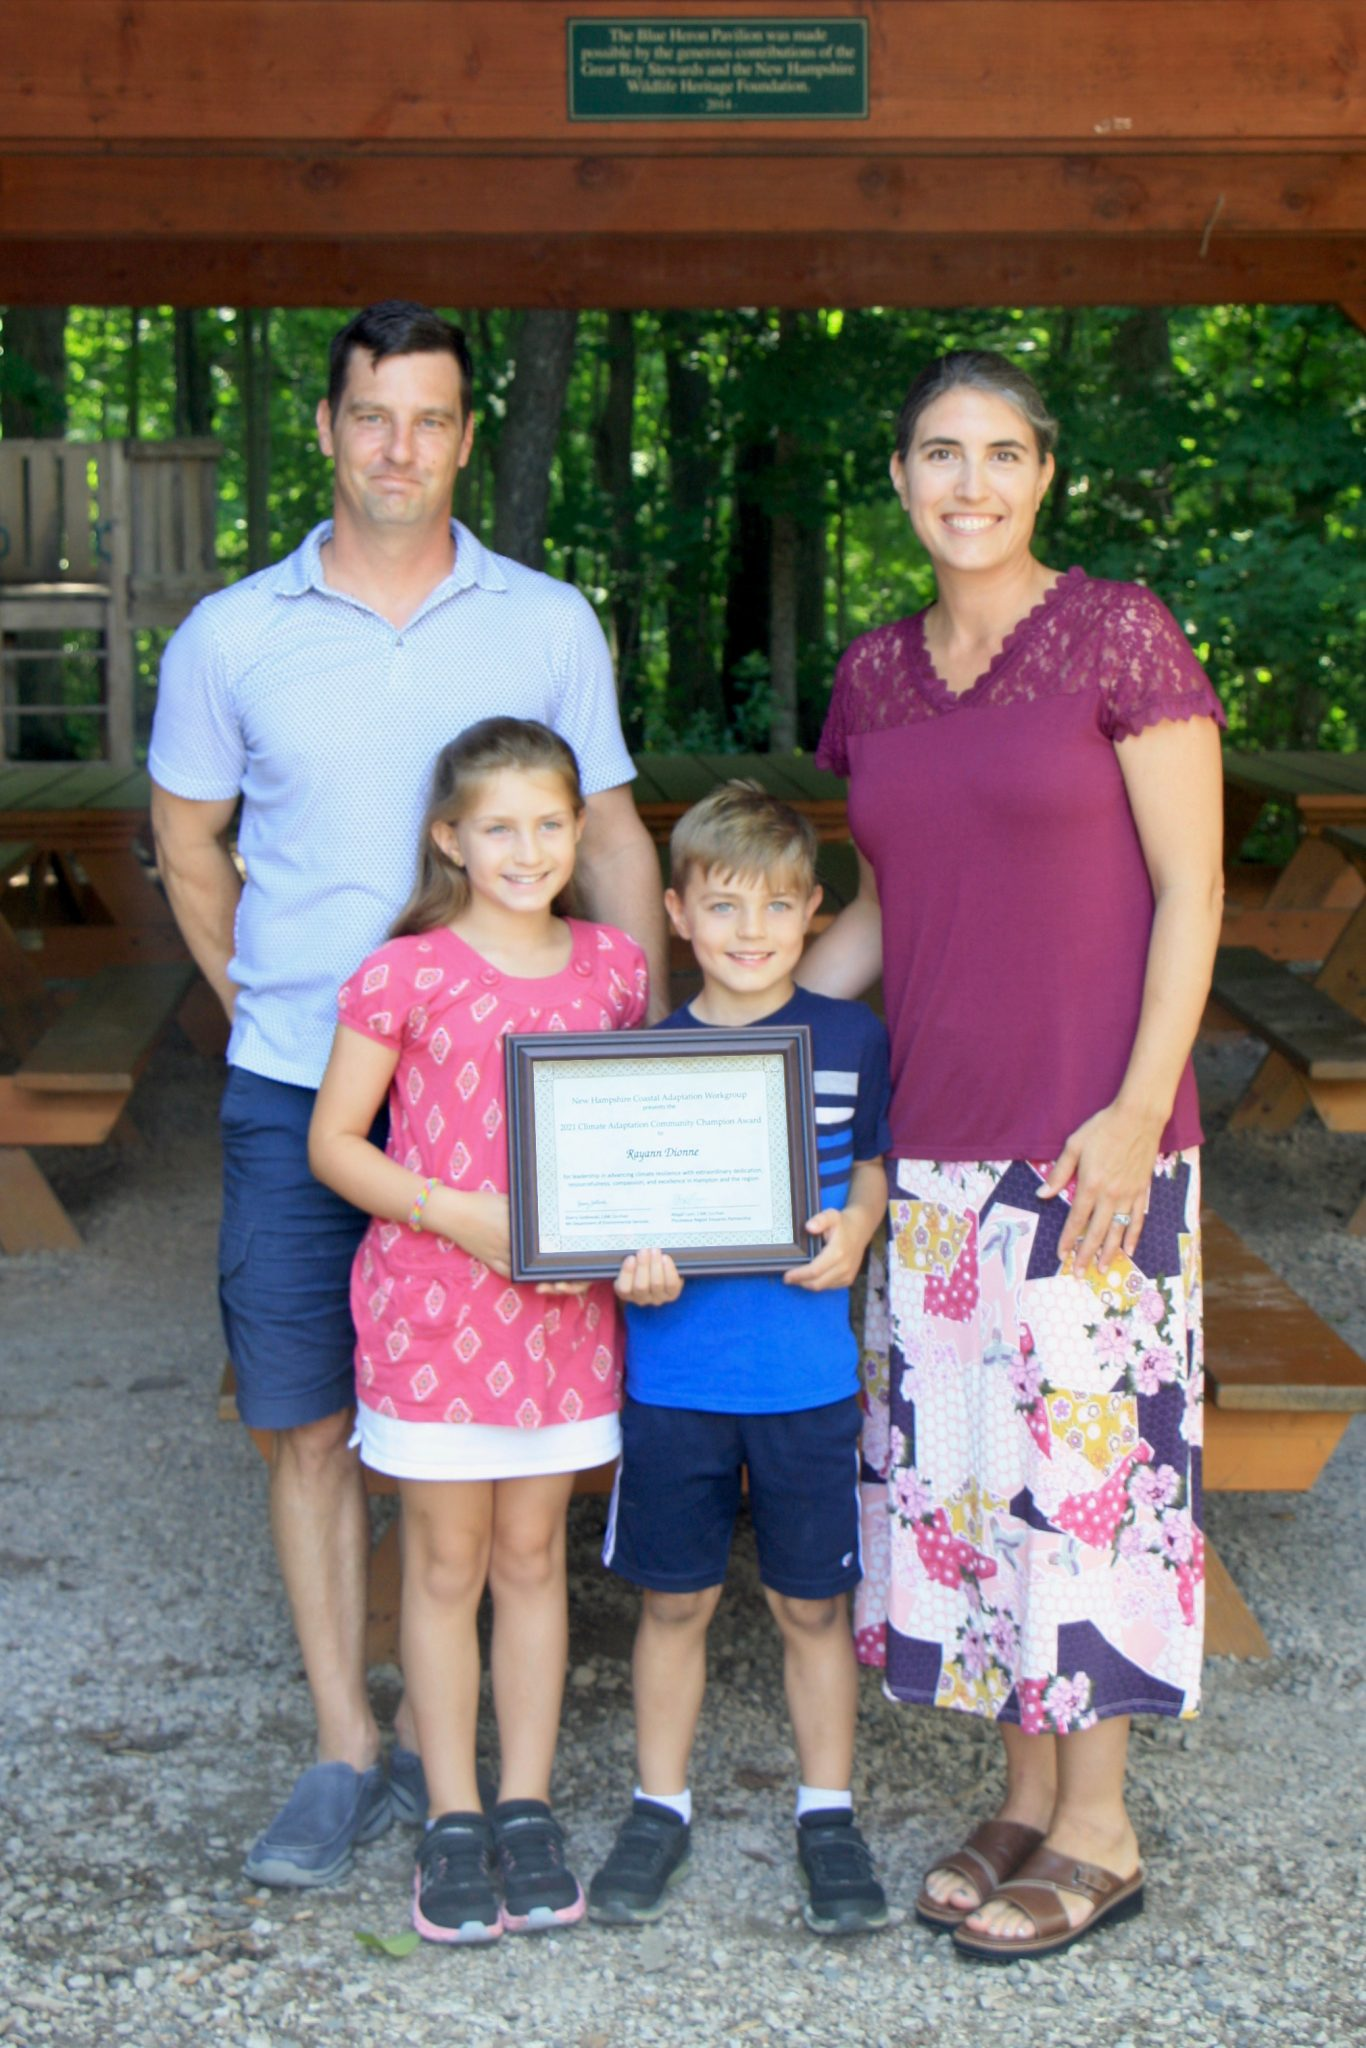 Rayann Dionne with her family (partner and two children holding award)